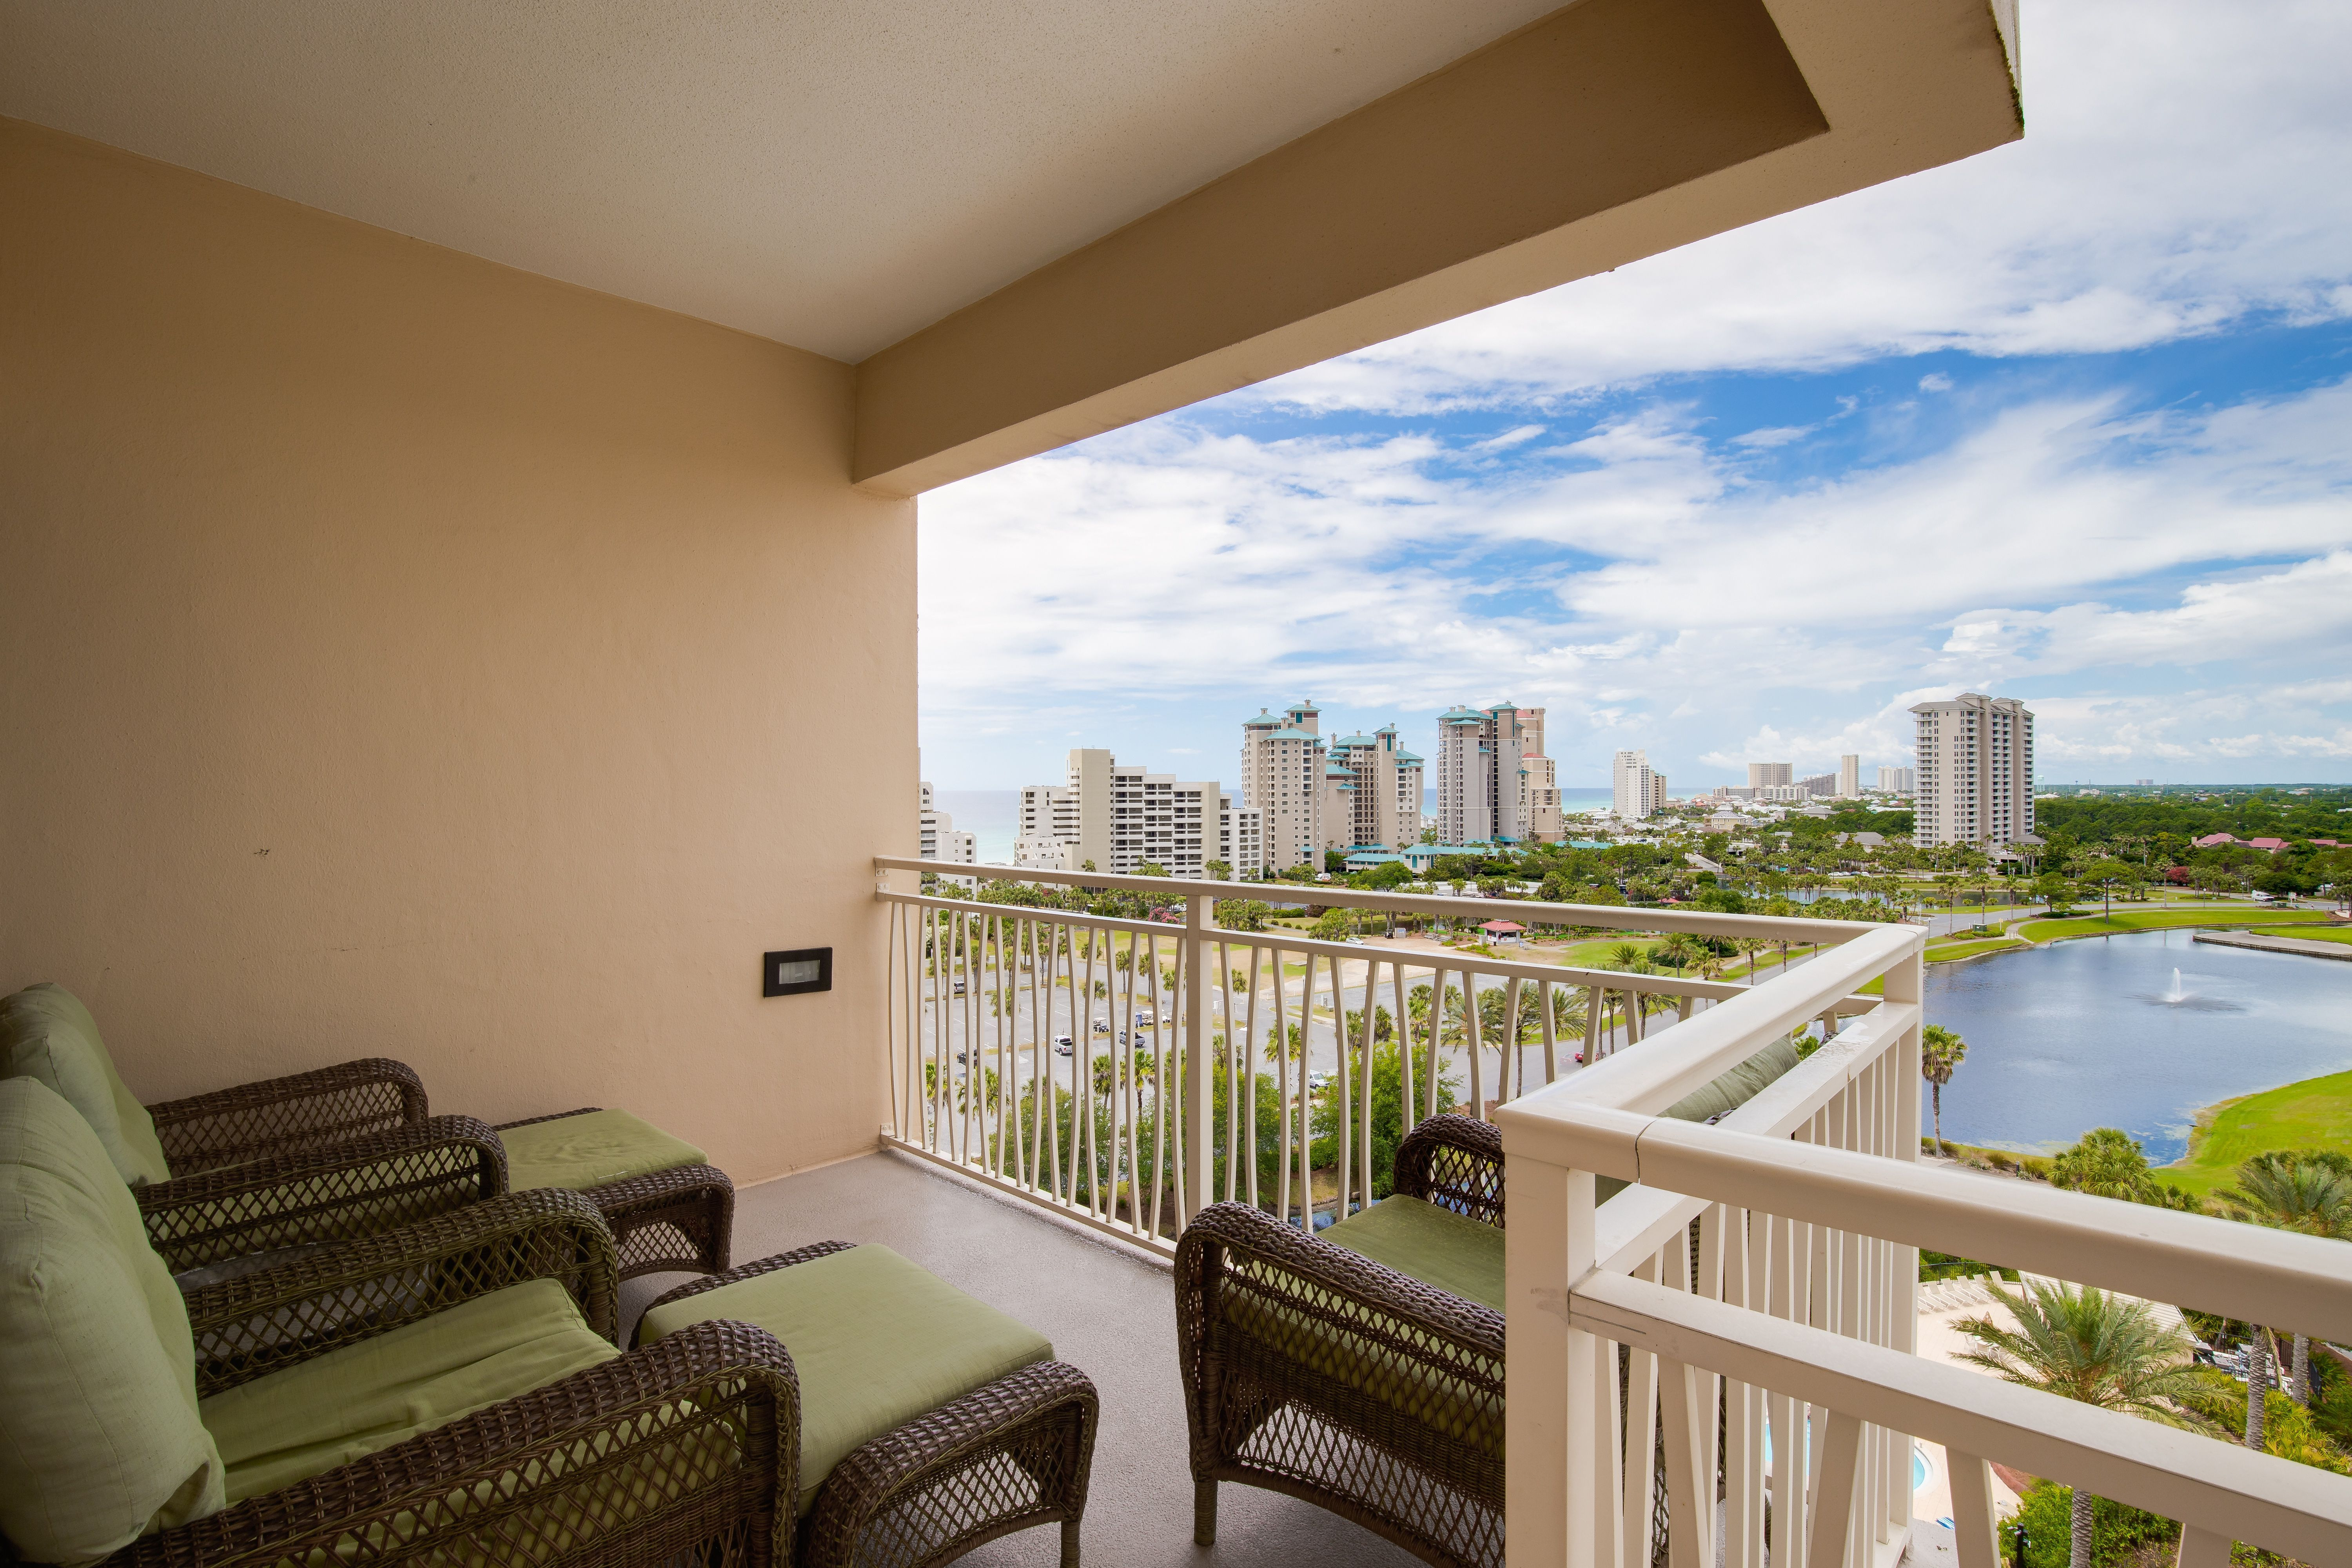 Wondering where to stay in Destin and Miramar Beach